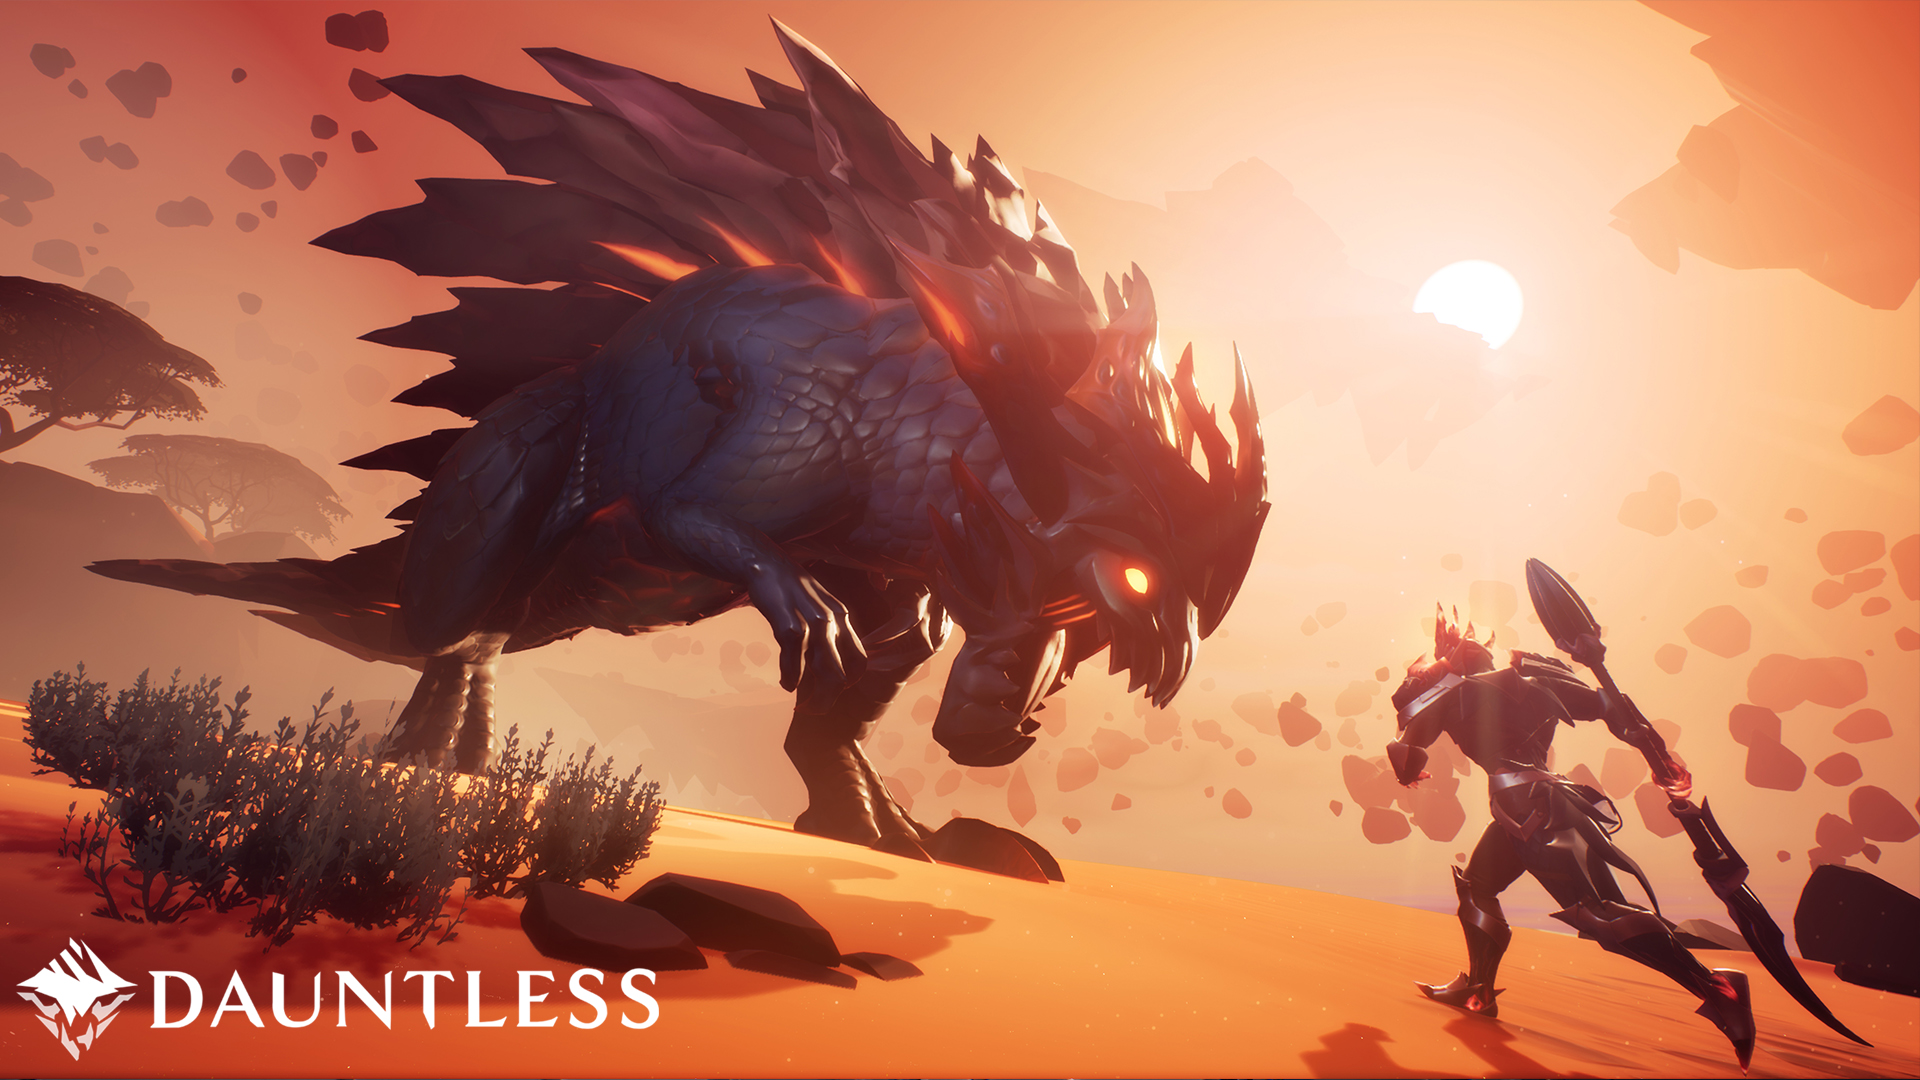 Dauntless Open Beta Is Now Live On PC Over One Million